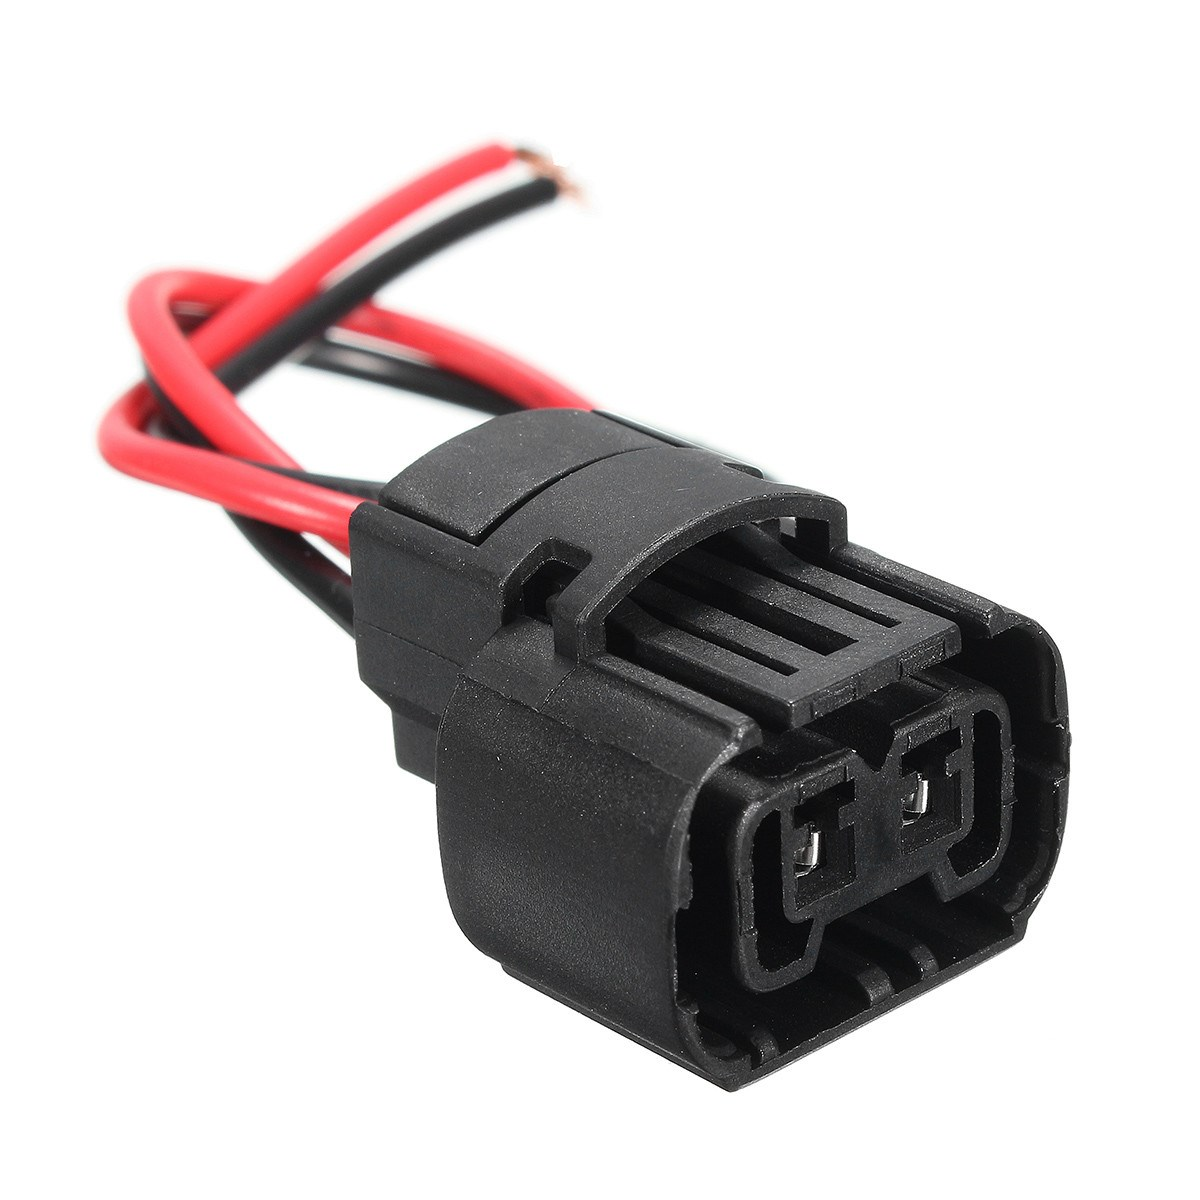 5202 5201 2504 H16 9009 PS24W Car Fog Lights Bulbs Female Connector Wiring  Harness Plug-in Wire from Automobiles & Motorcycles on Aliexpress.com |  Alibaba ...